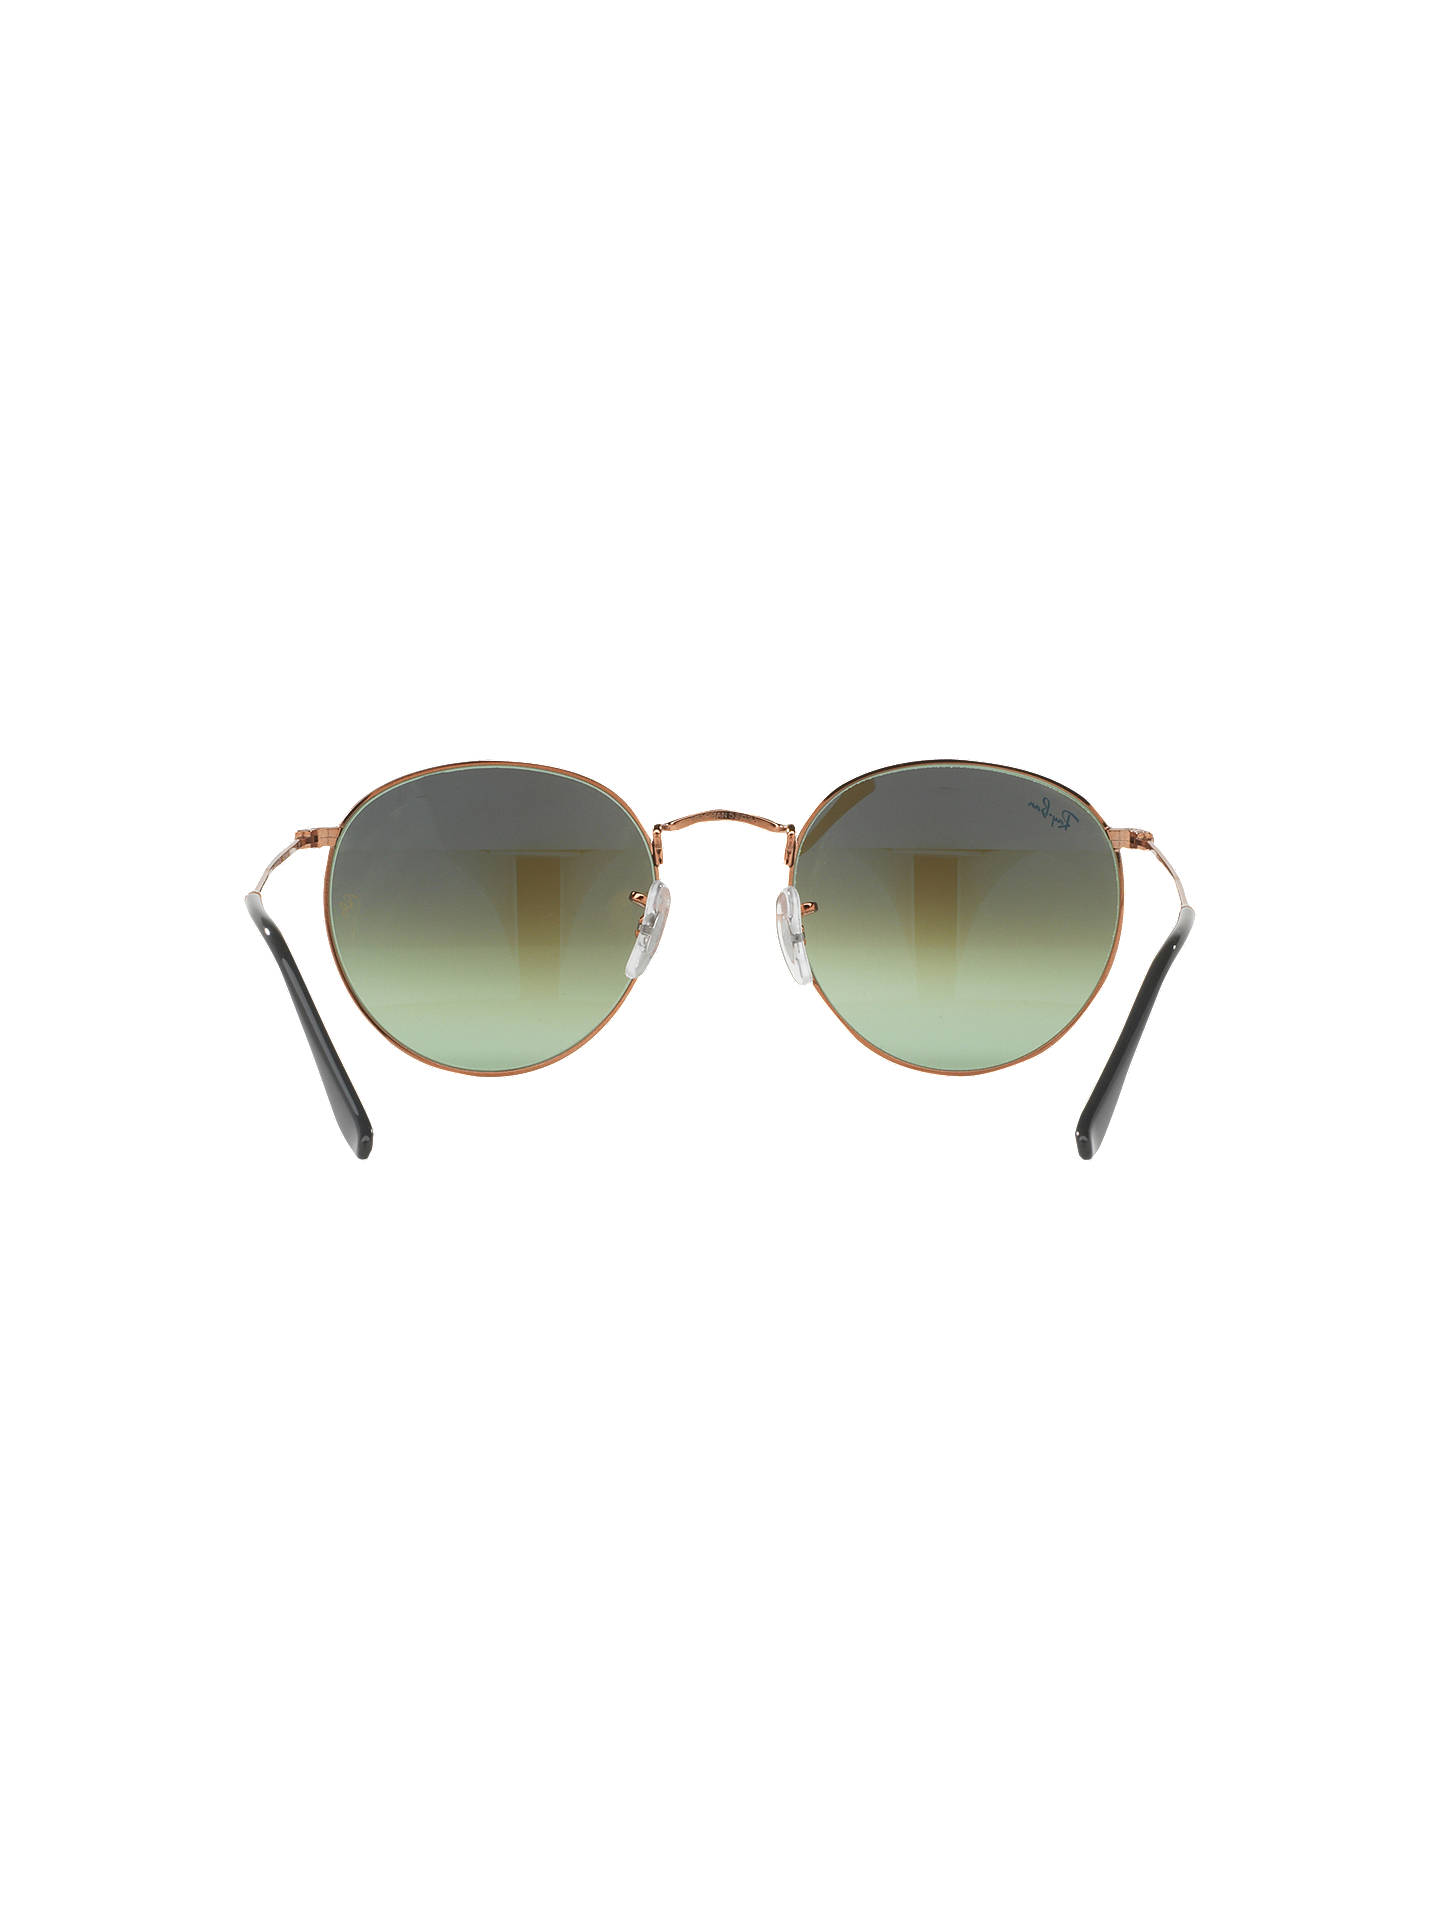 32107a96fc Ray-Ban RB3447 Round Sunglasses at John Lewis   Partners